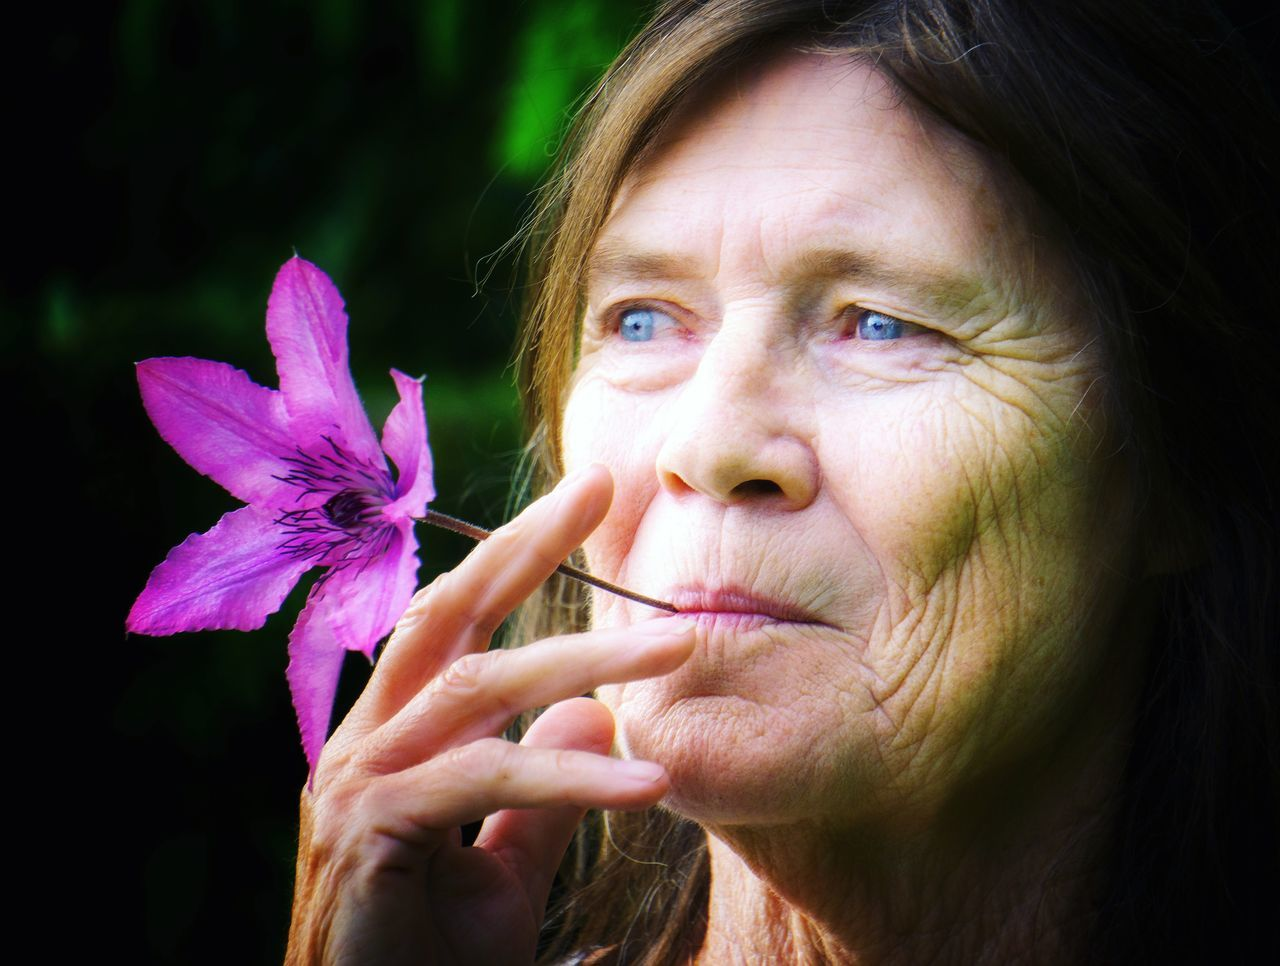 Flower power. 🌼 Flower Headshot One Person Only Women Portrait Adult Beautiful Woman One Woman Only Close-up Fragility Outdoors Nature Women Flower Power